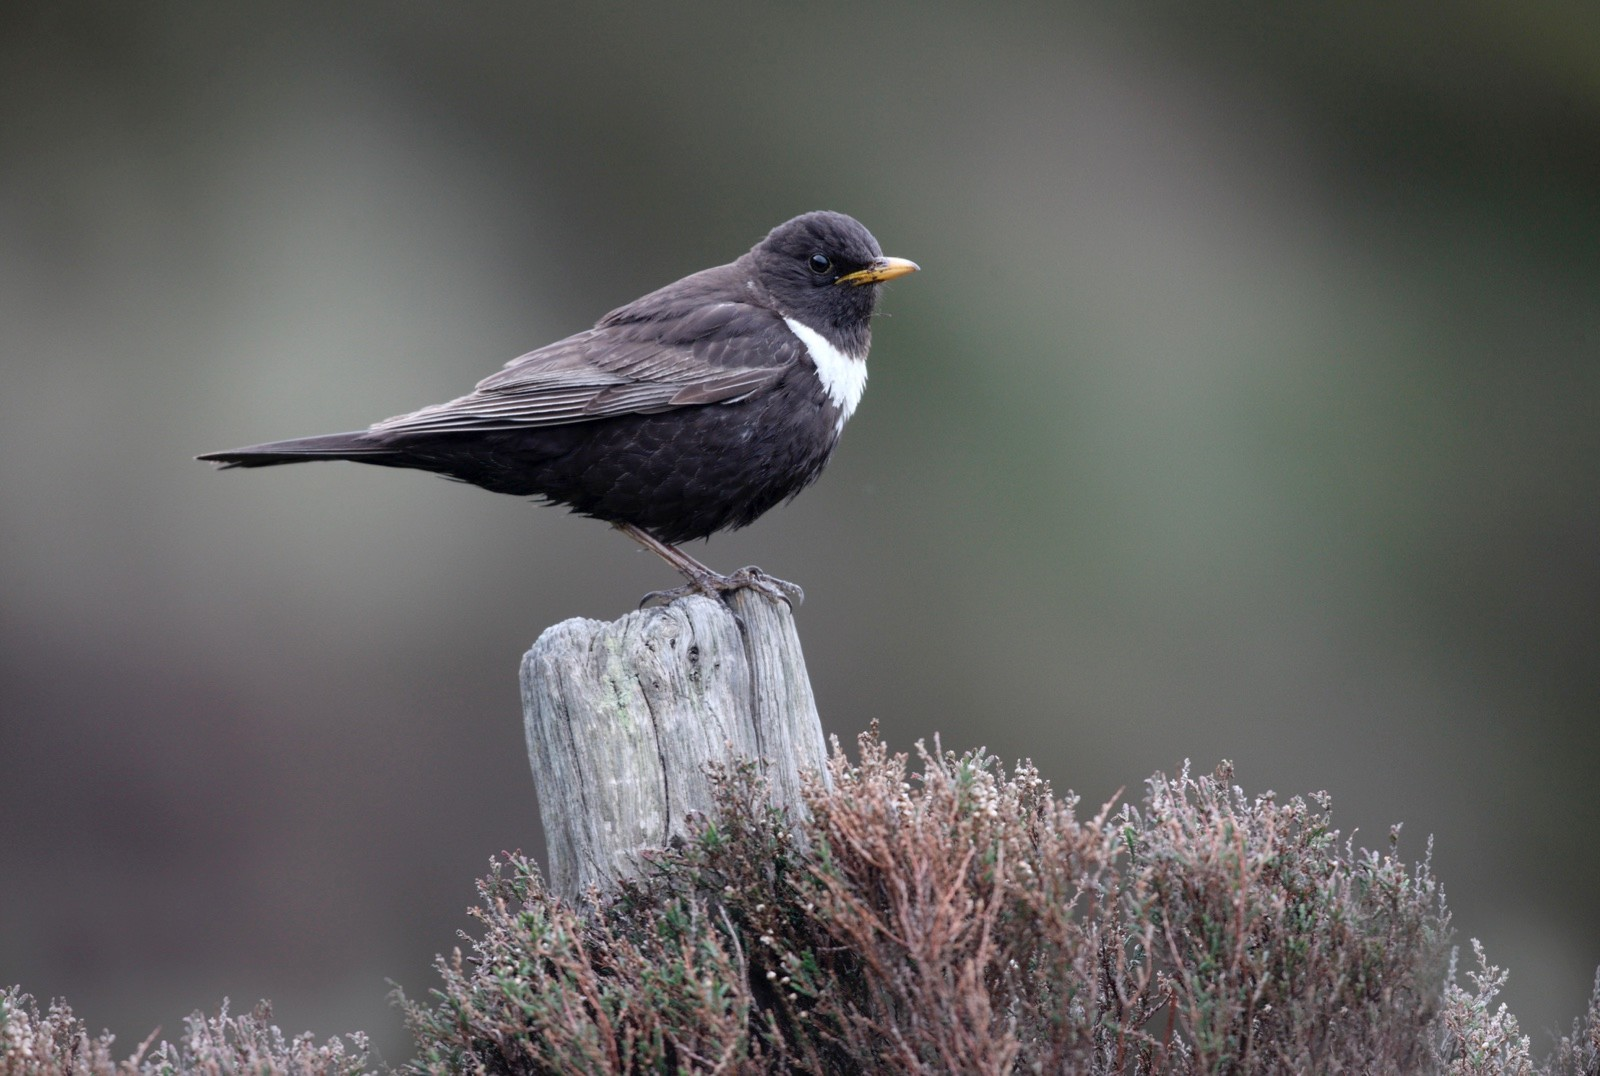 Ring ouzel, Turdus torquatus, male, North Yorkshire, spring